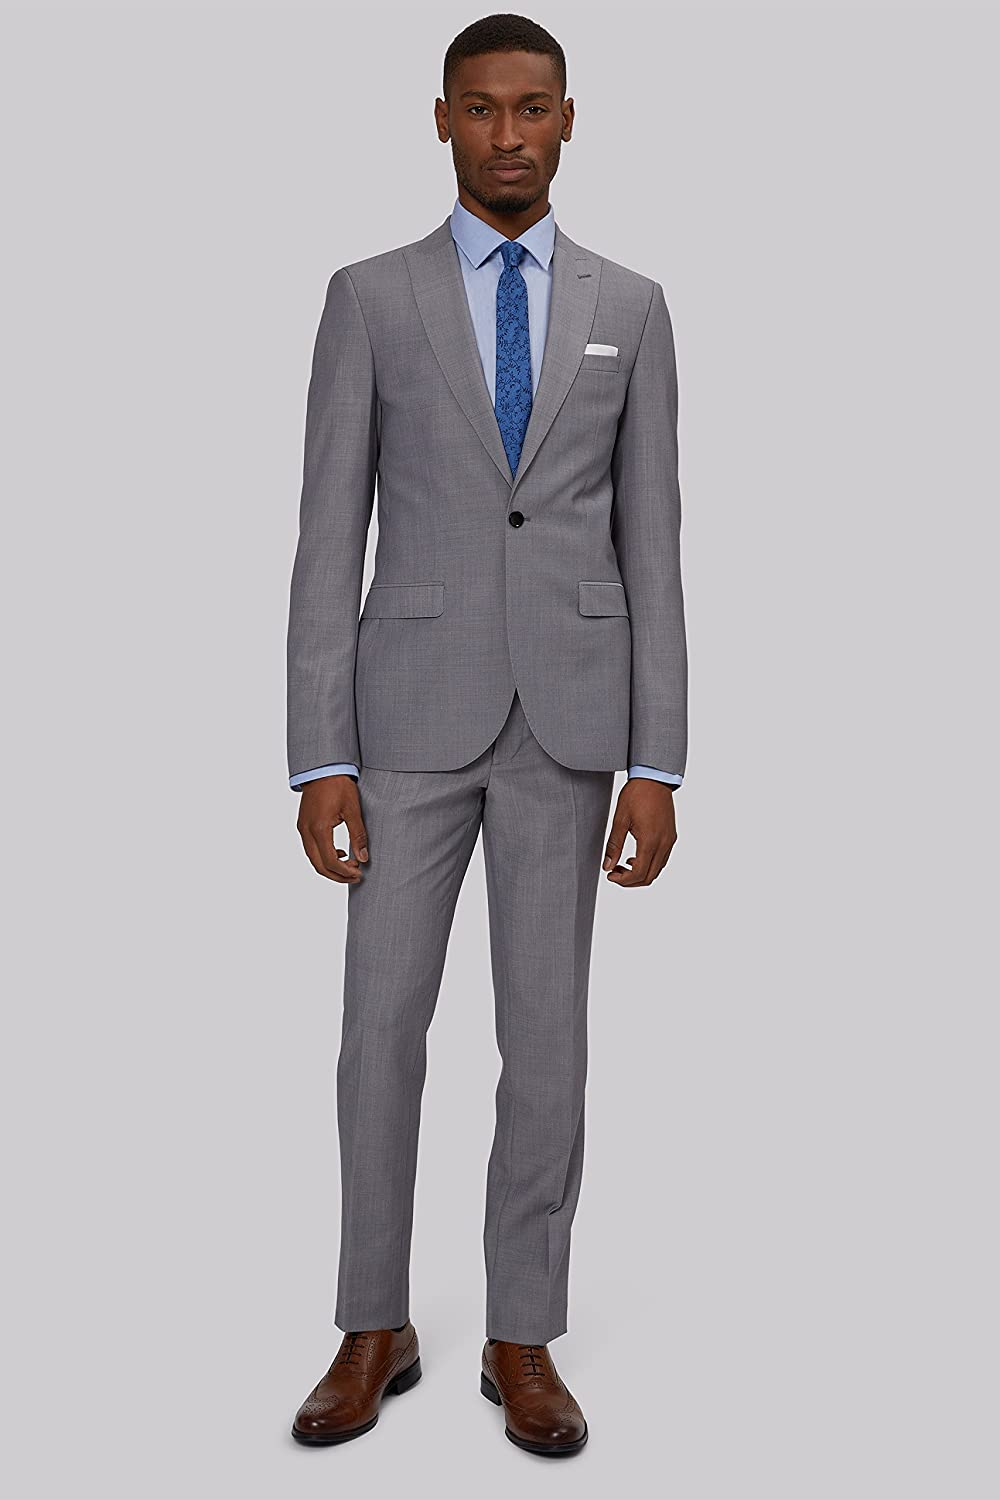 French Connection Slim Fit Light Grey 3 Piece Suit